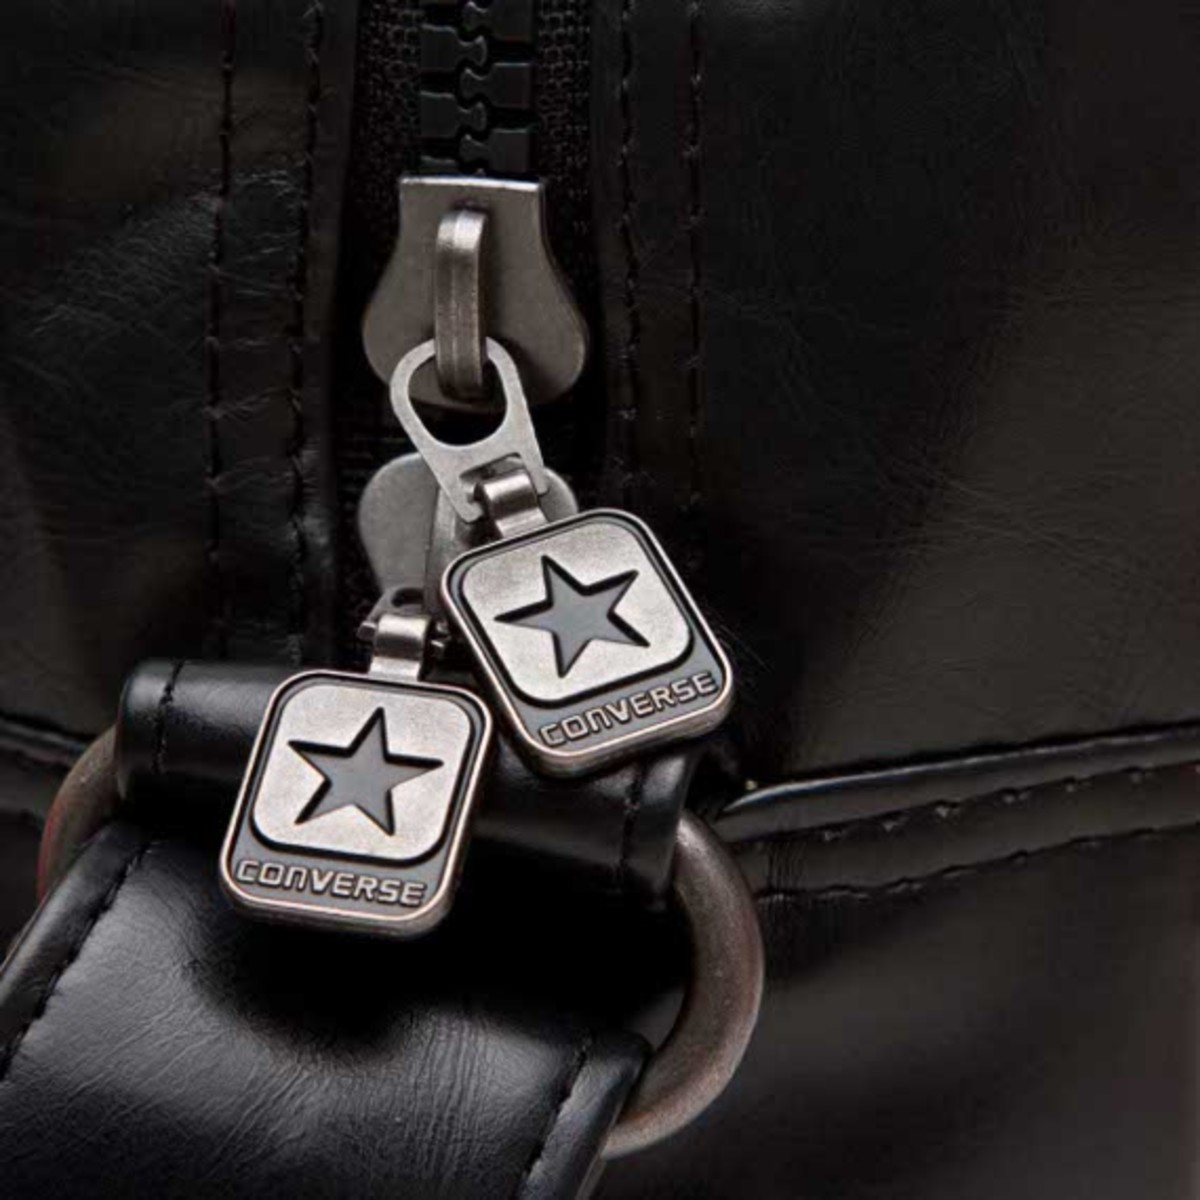 converse-bag-collection-21